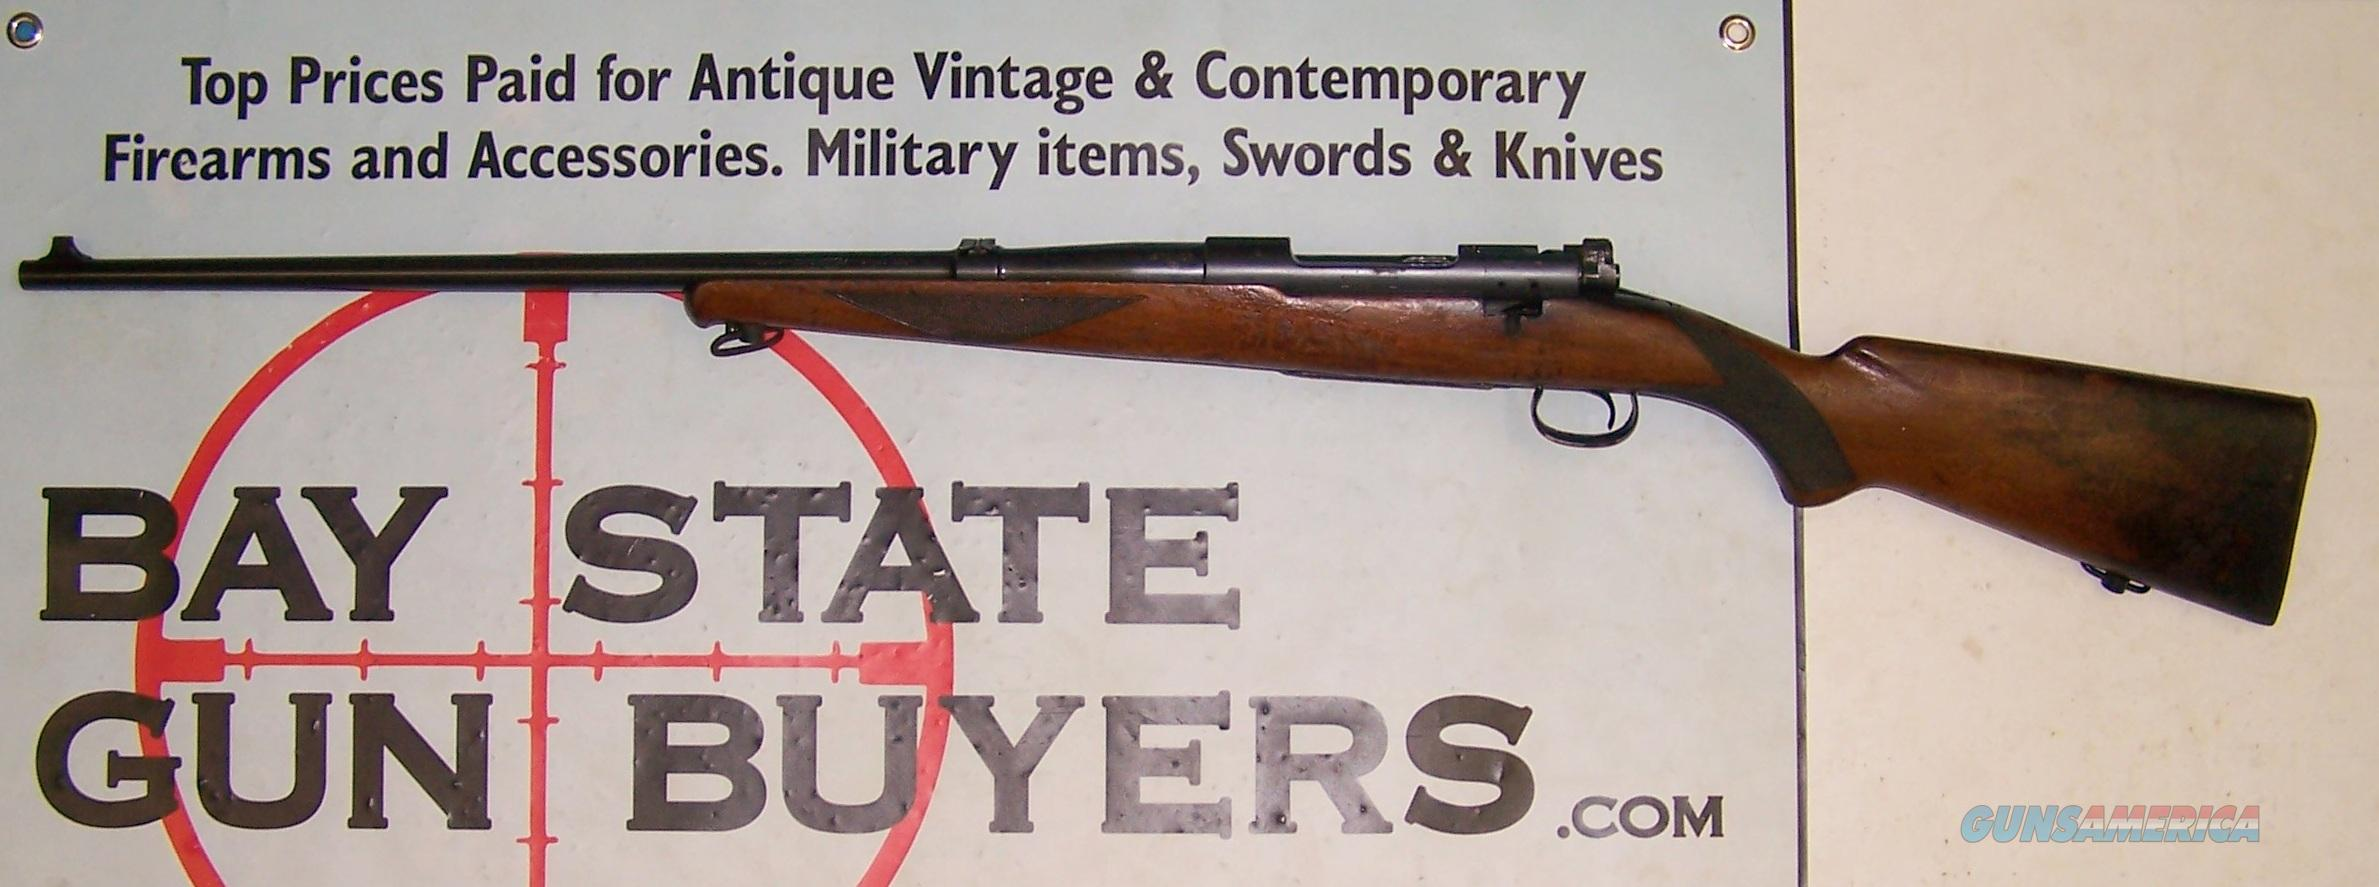 FIRST YEAR PRODCTION Winchester Model 54 rifle .270 WCF  (1925 mfg.)   Guns > Rifles > Winchester Rifles - Modern Bolt/Auto/Single > Other Bolt Action